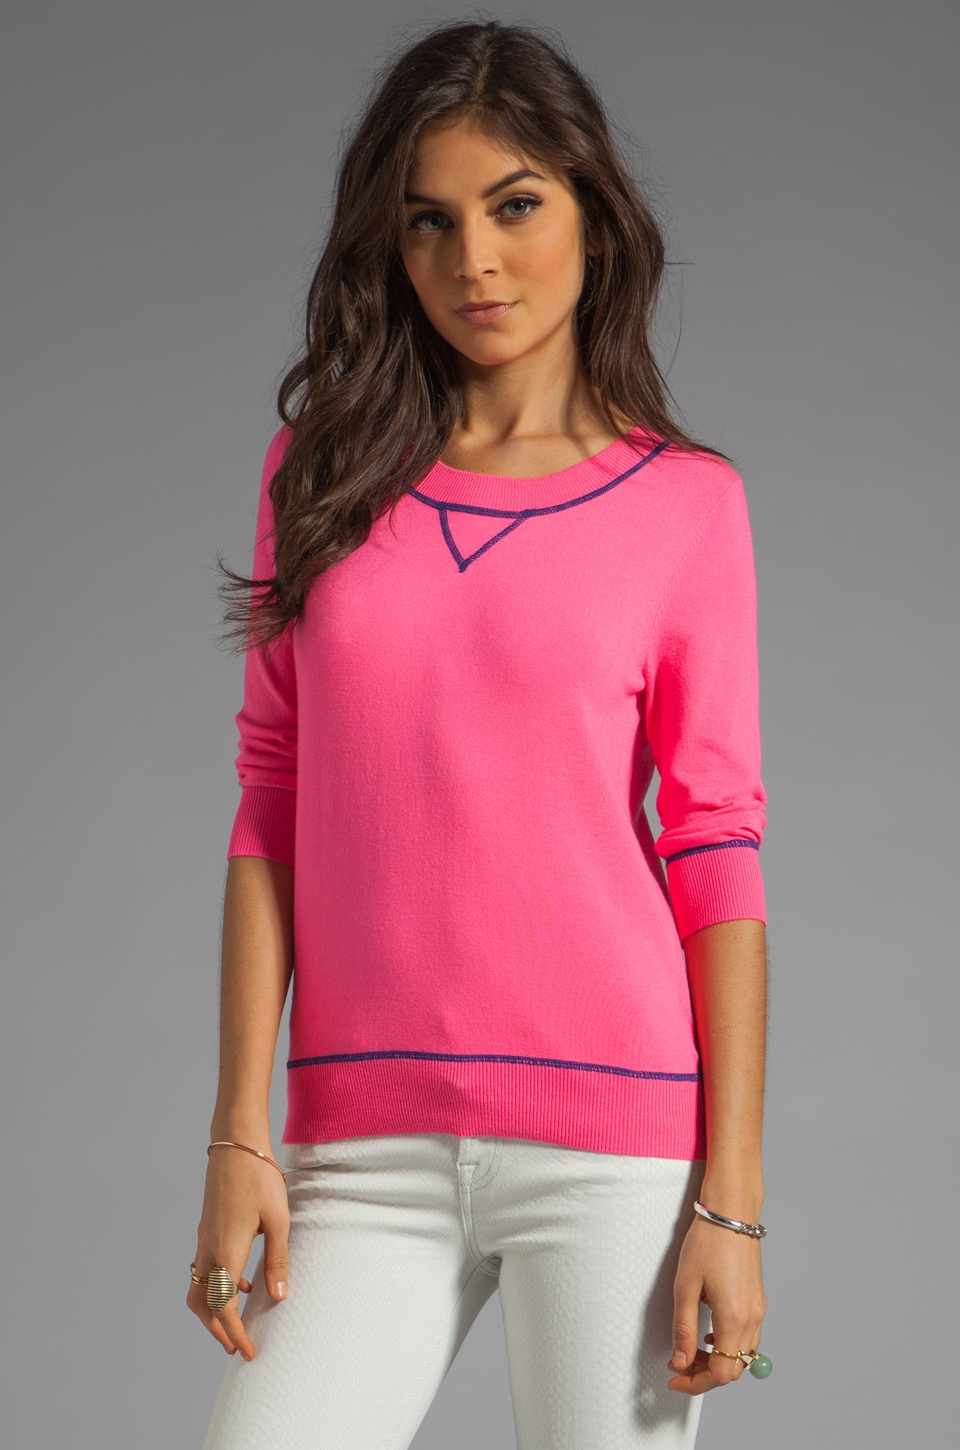 MILLY January Knits Sweatshirt in Shocking Pink/Lapis